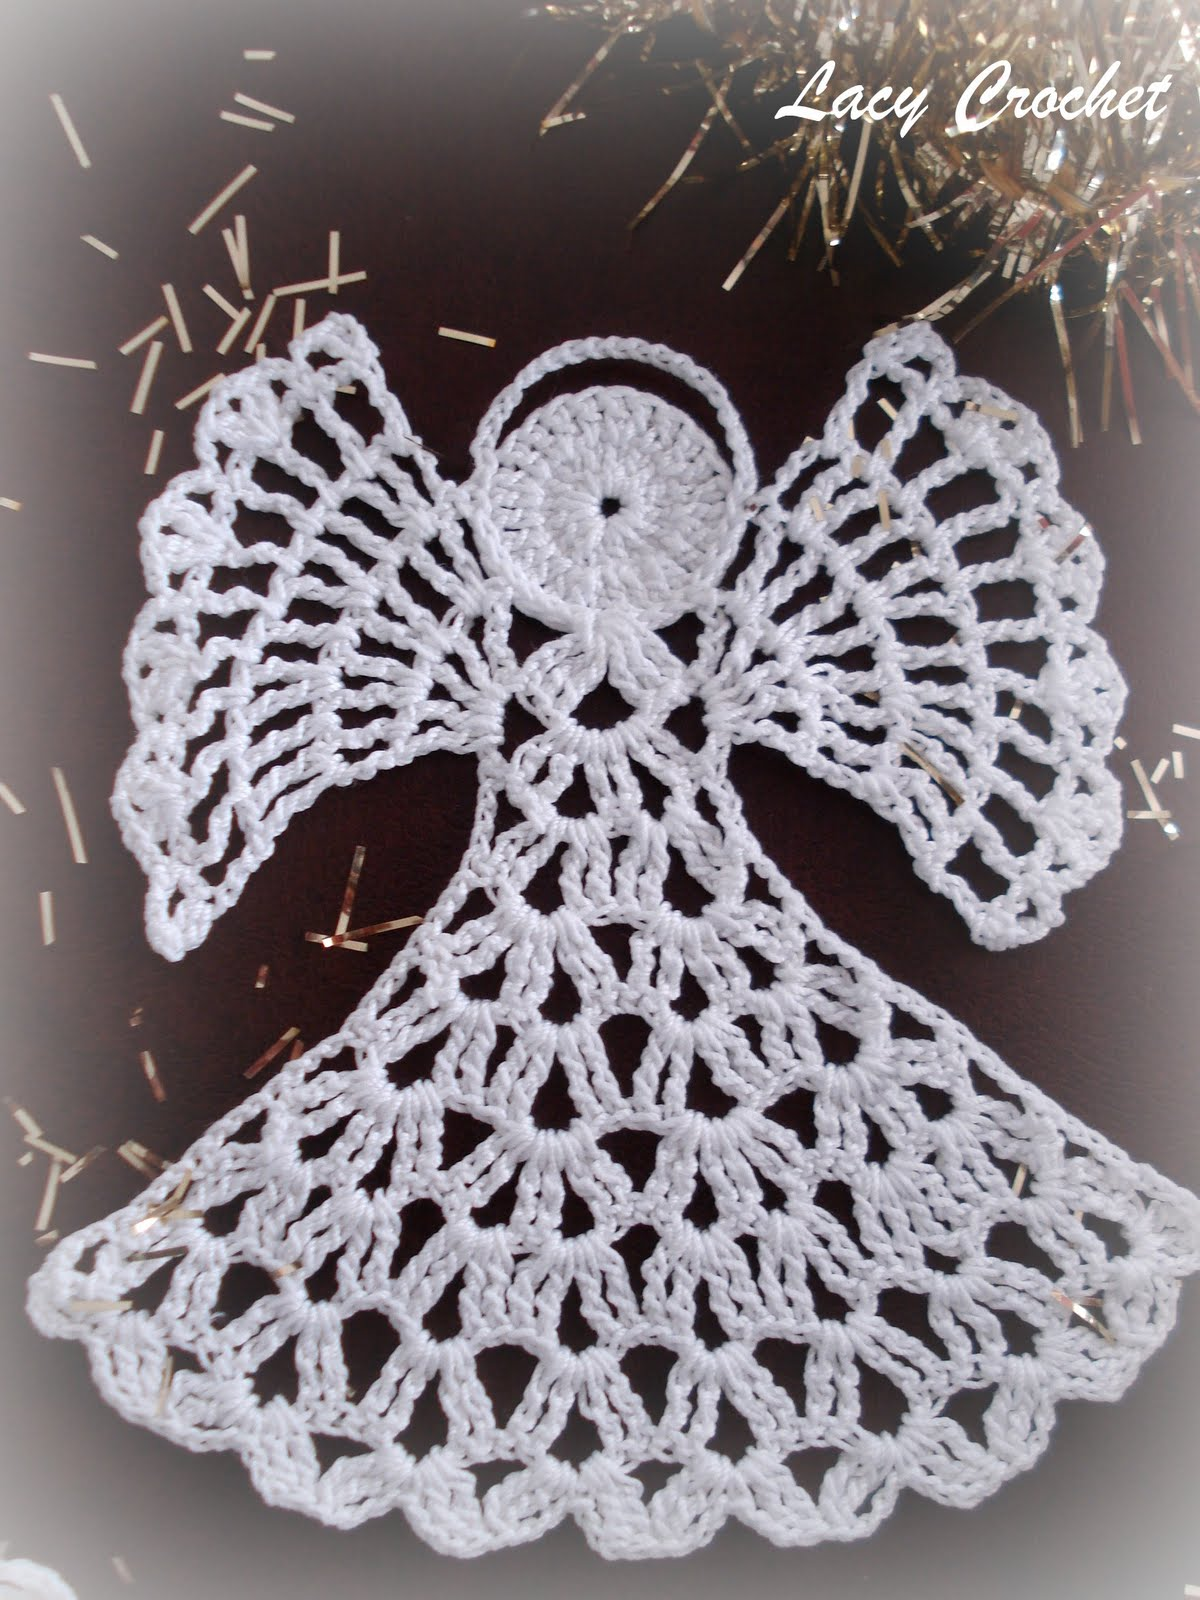 Crochet Patterns Free Angel : Lacy Crochet: November 2011